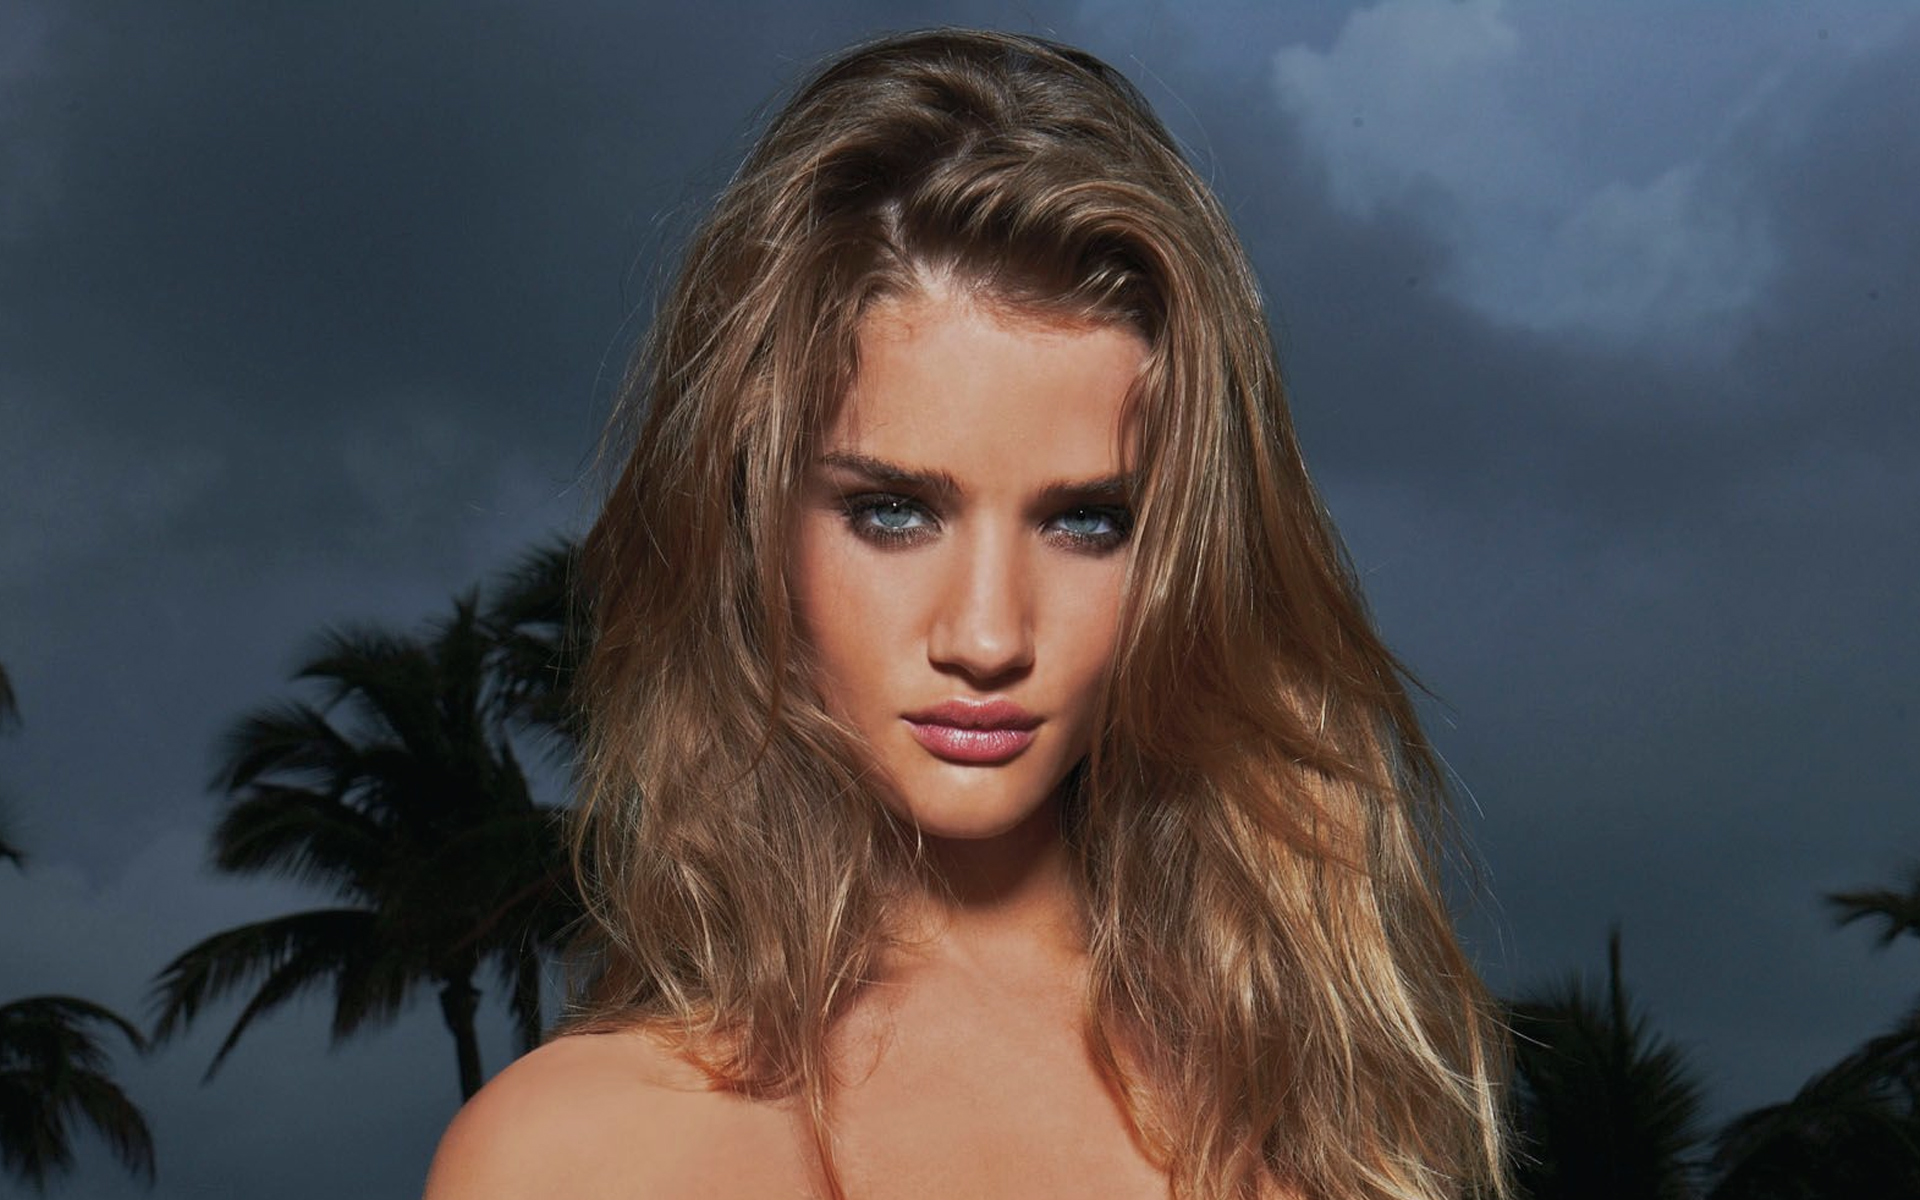 woman rosie huntington-whiteley supermodels HD Wallpaper